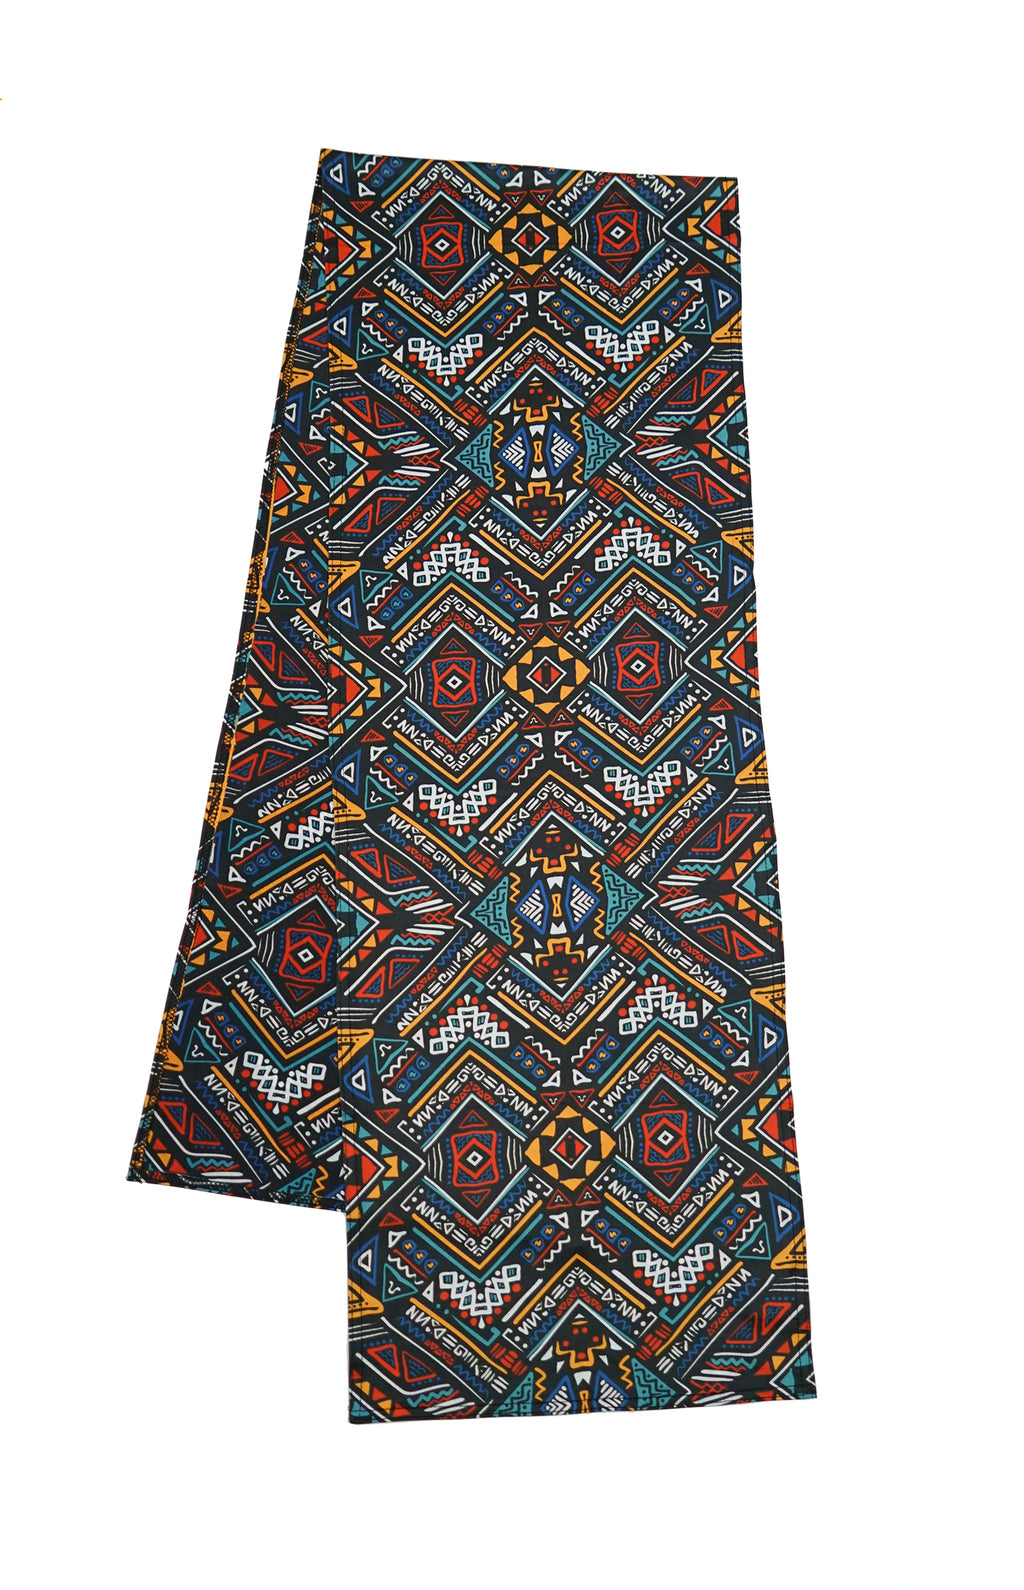 Super comfortable music festival pashmina. Unique tribal patterns with vibrant red, blue, orange, and white colors. The perfect music festival accessory that can be used as a face mask.